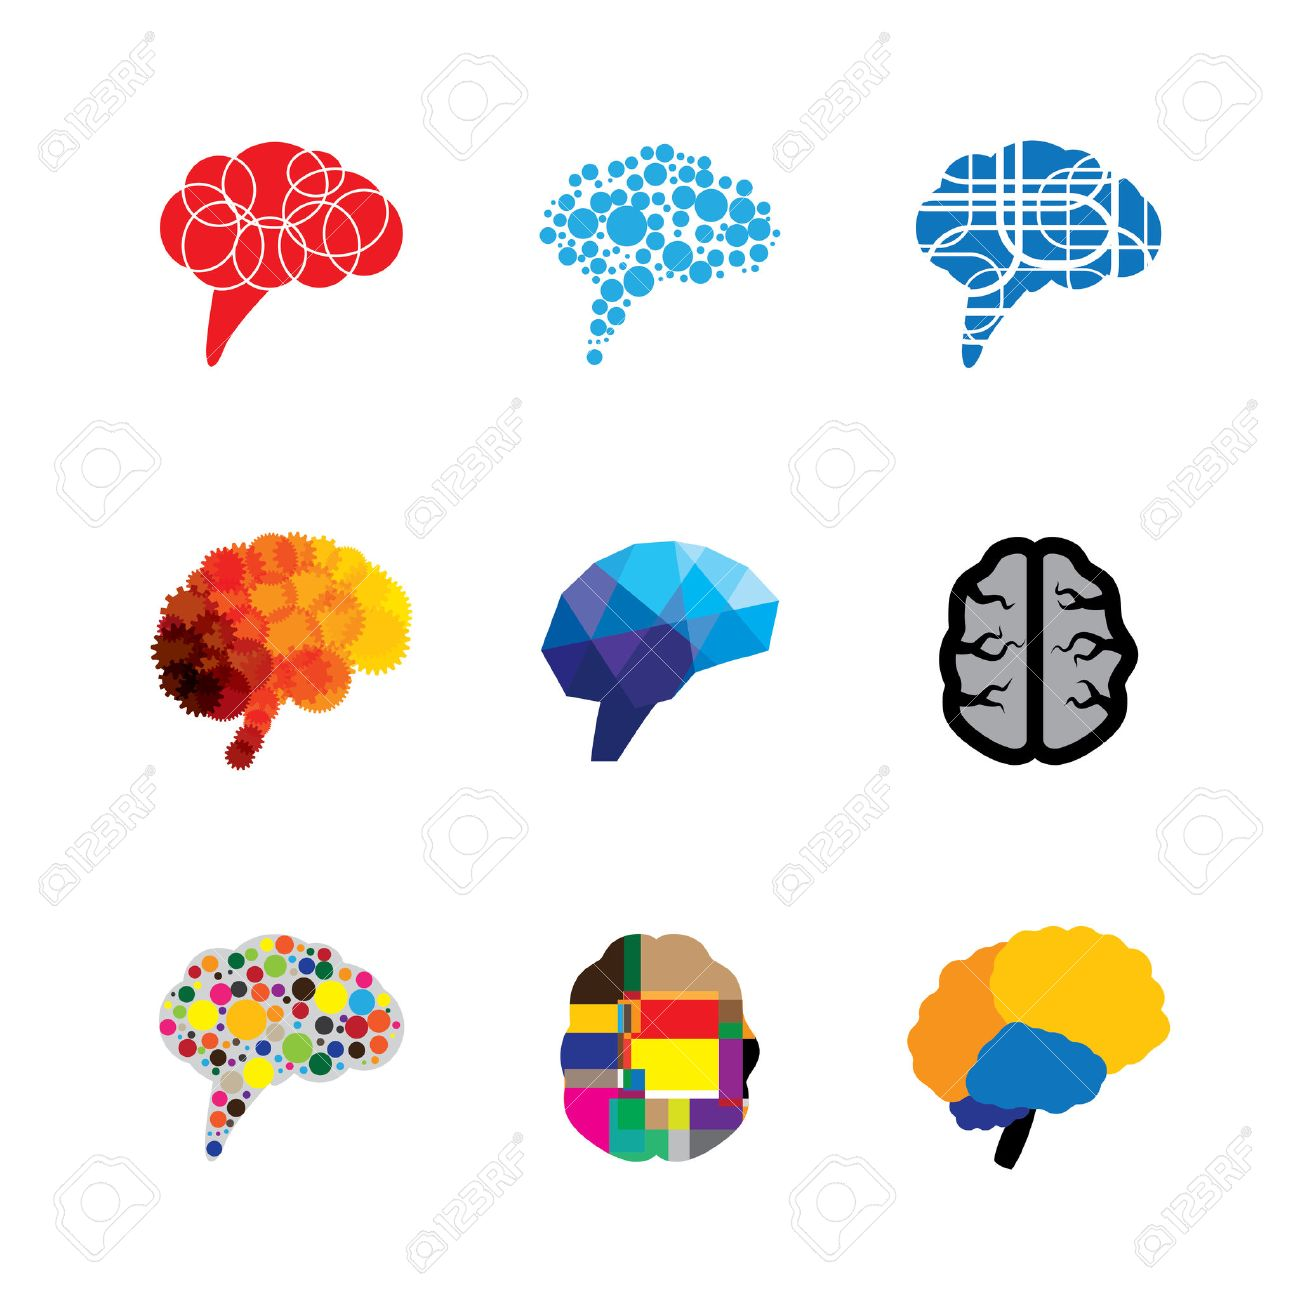 concept vector logo icons of brain and mind this graphic also rh 123rf com vector logo freepik vector logo free download cdr